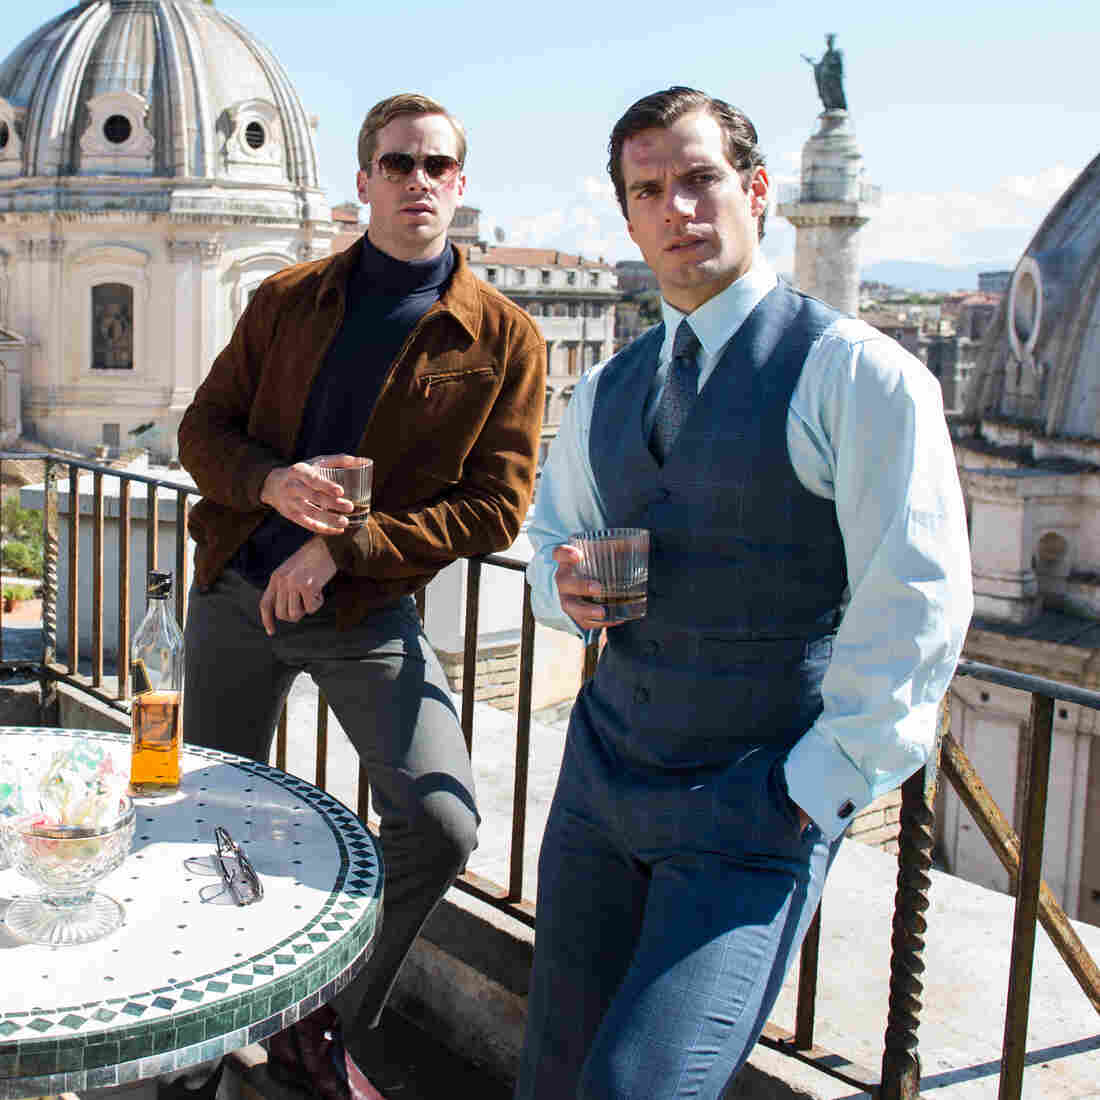 A Funny And Sexy Adaptation Of 'The Man From U.N.C.L.E.'